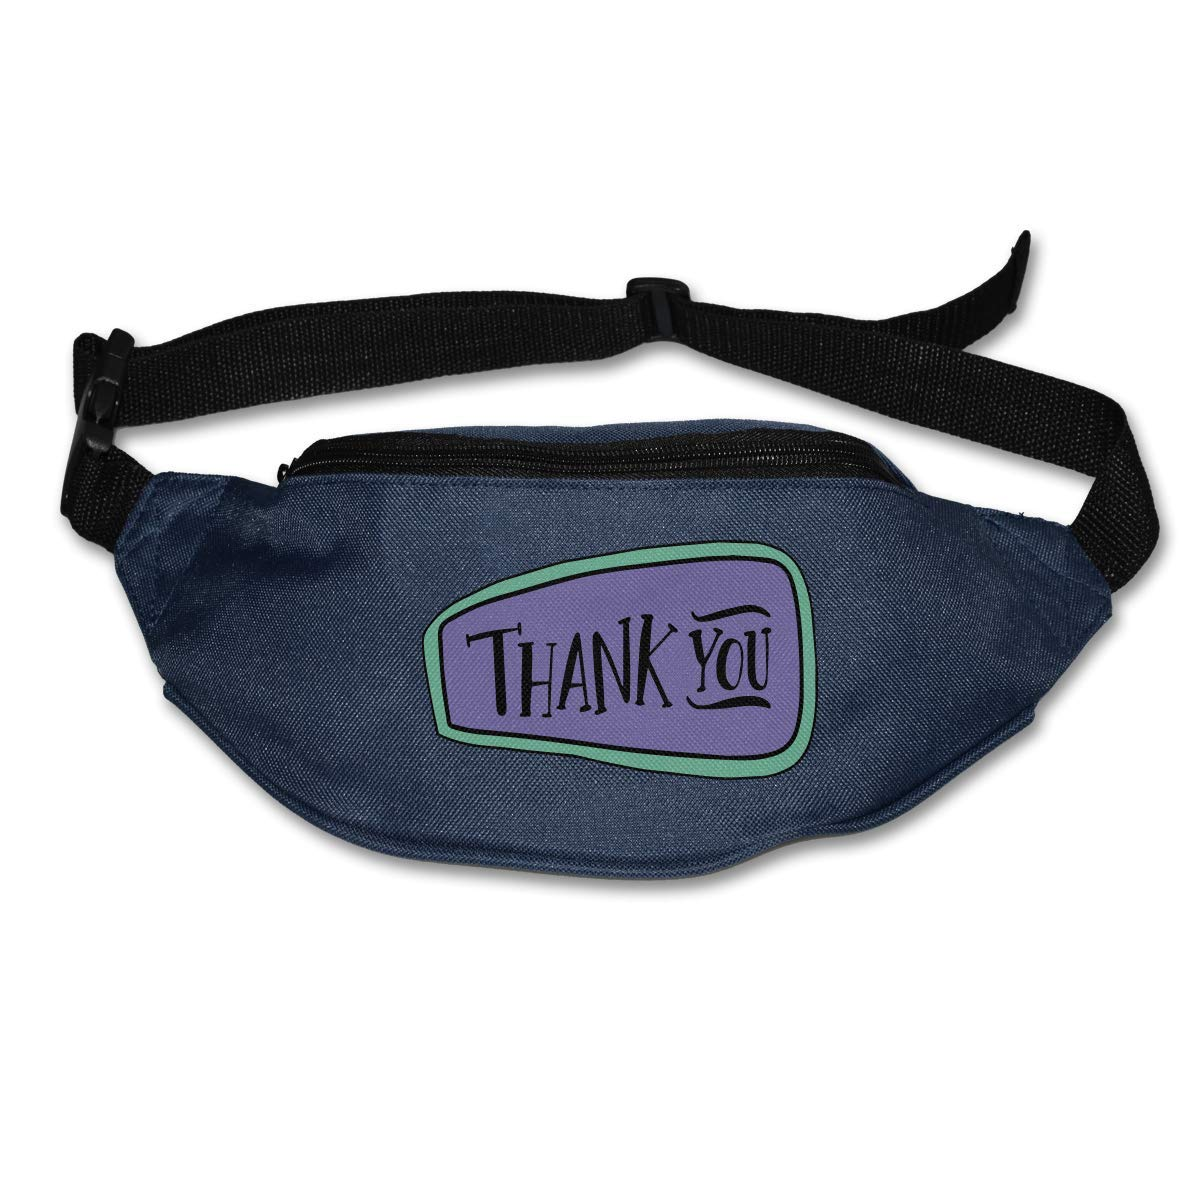 Waist Purse Thank You Words Graphic Unisex Outdoor Sports Pouch Fitness Runners Waist Bags